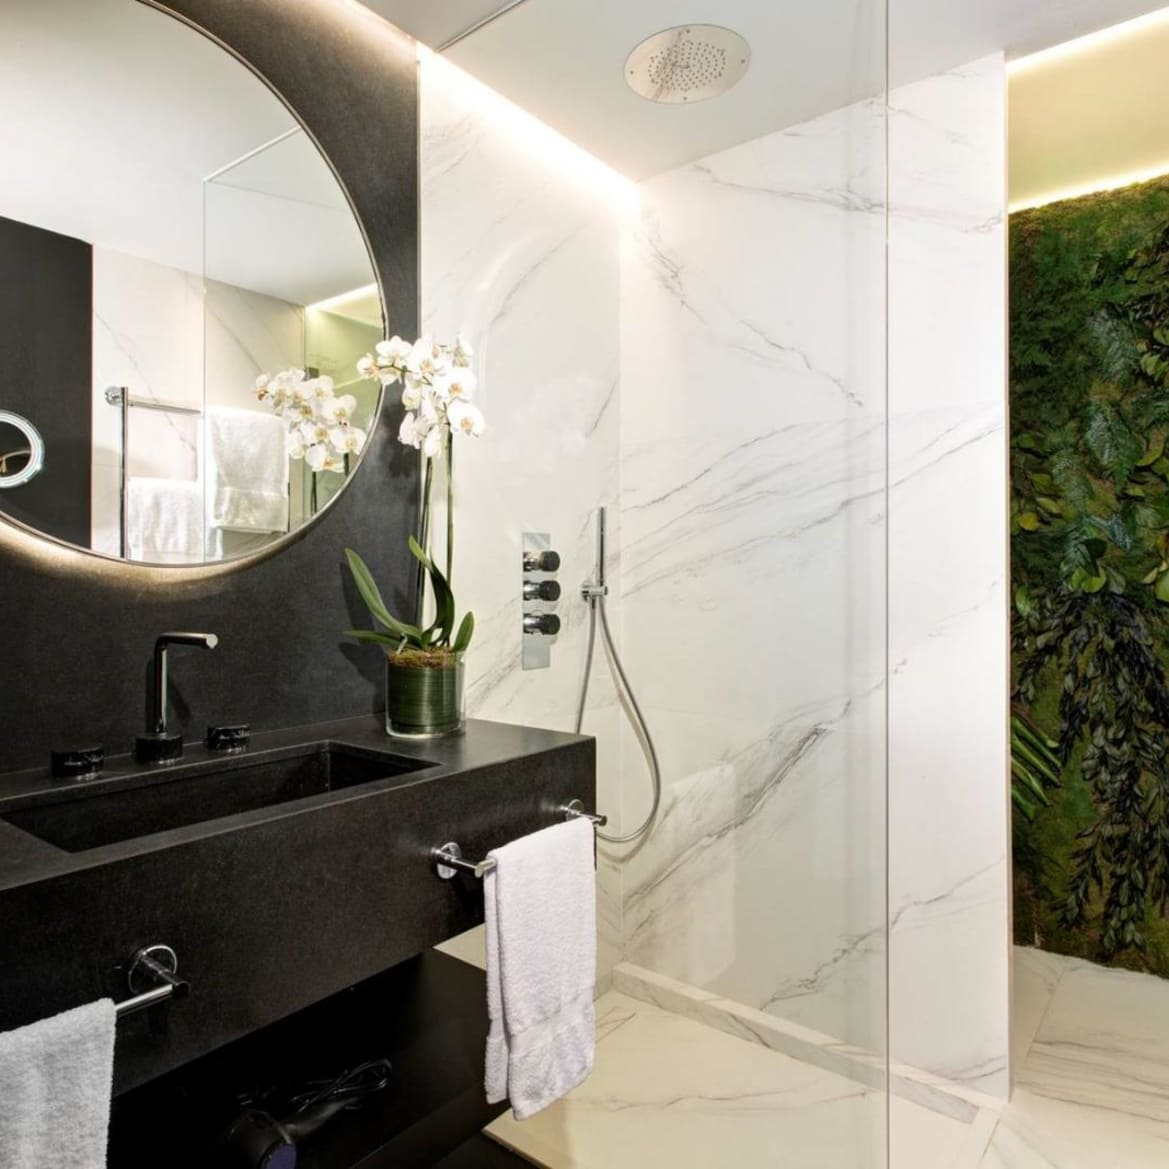 Deluxe Room - State of the art bathroom - The Pavilions Madrid